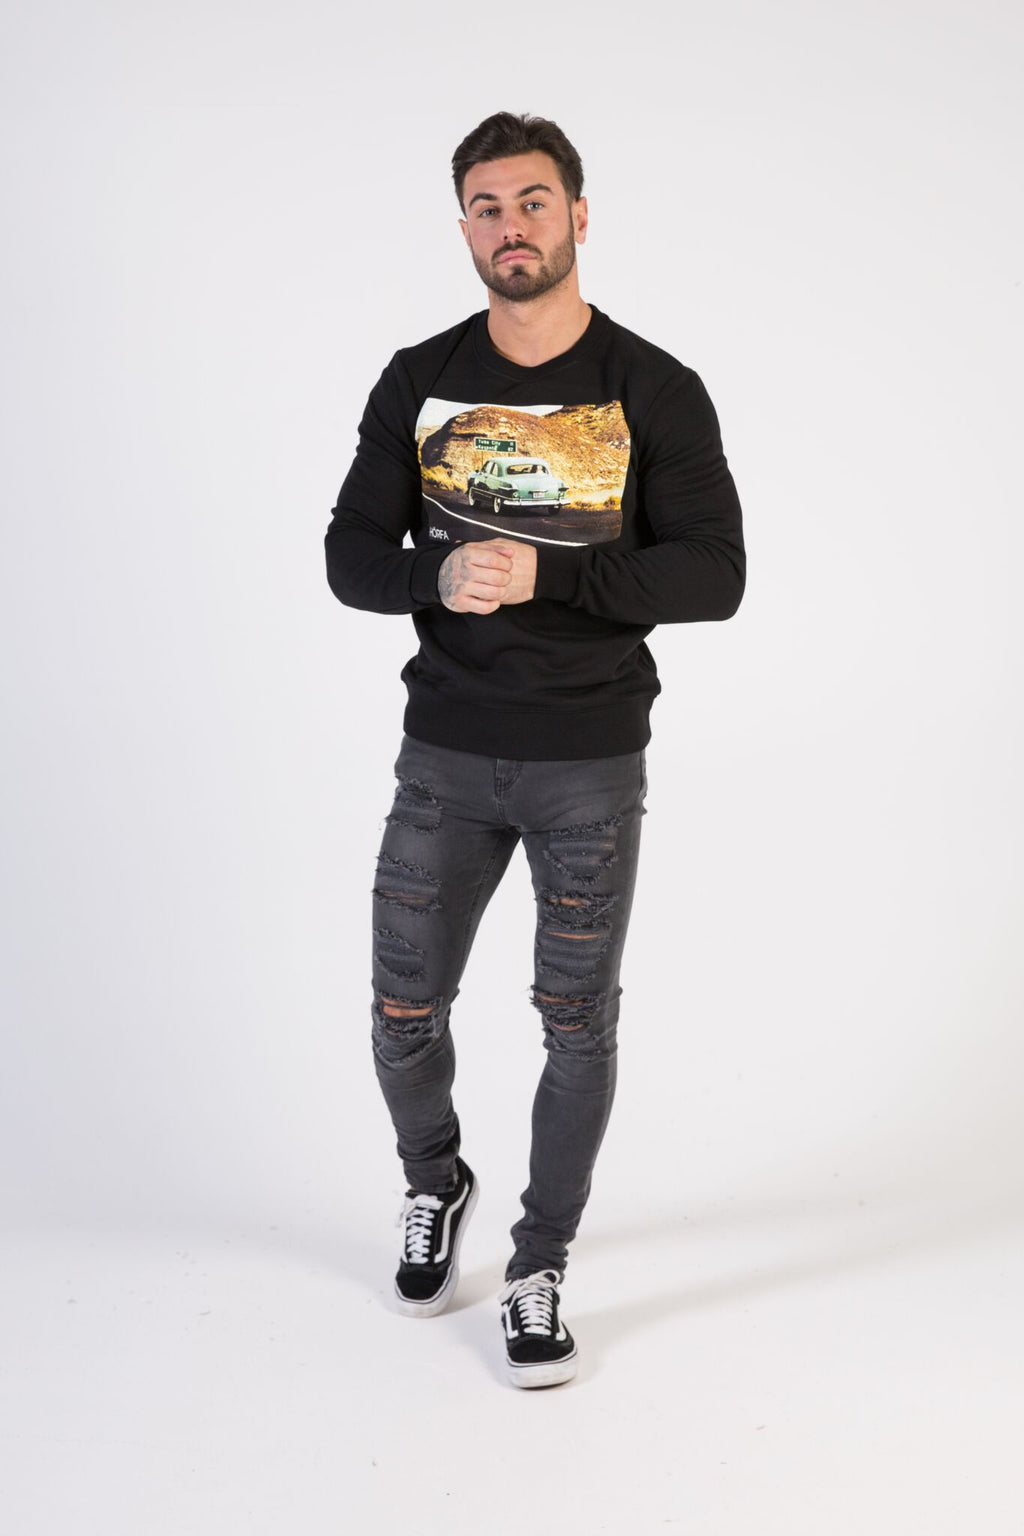 ROADTRIP Sweatshirt - HÖRFA is a men's global fashion brand that provides products such as Fashionable Watches, Wallets, Sunglasses, Belts, Beard and Male Grooming Products